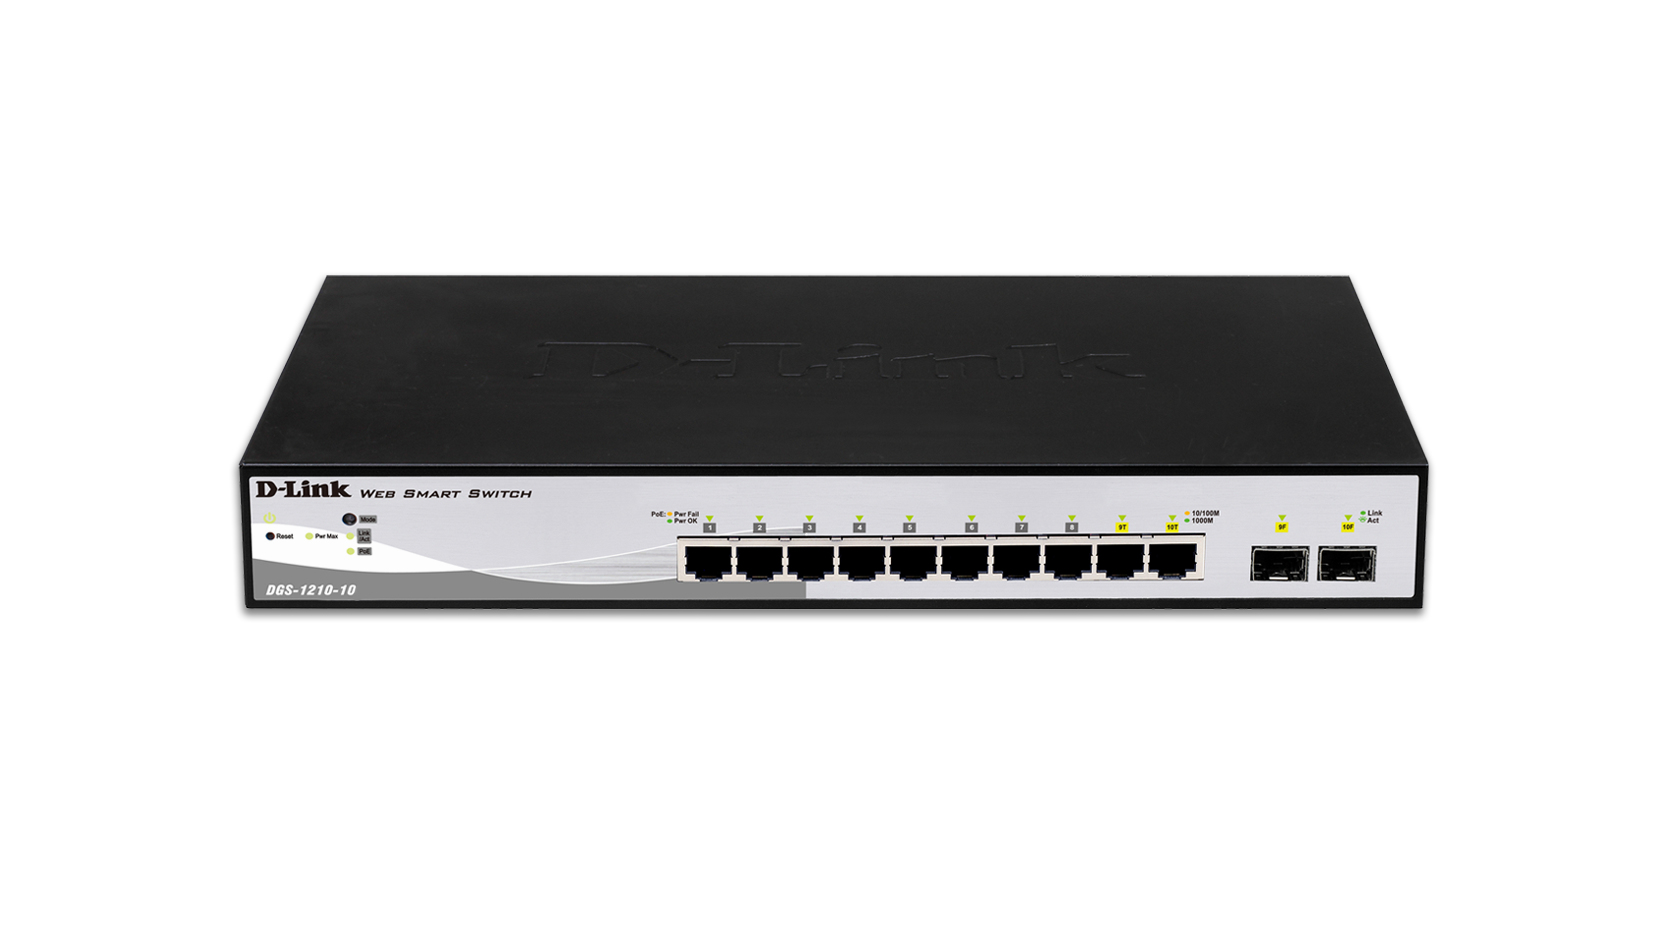 10-Prt Gigabit Smart Switch w 2 SFP prts